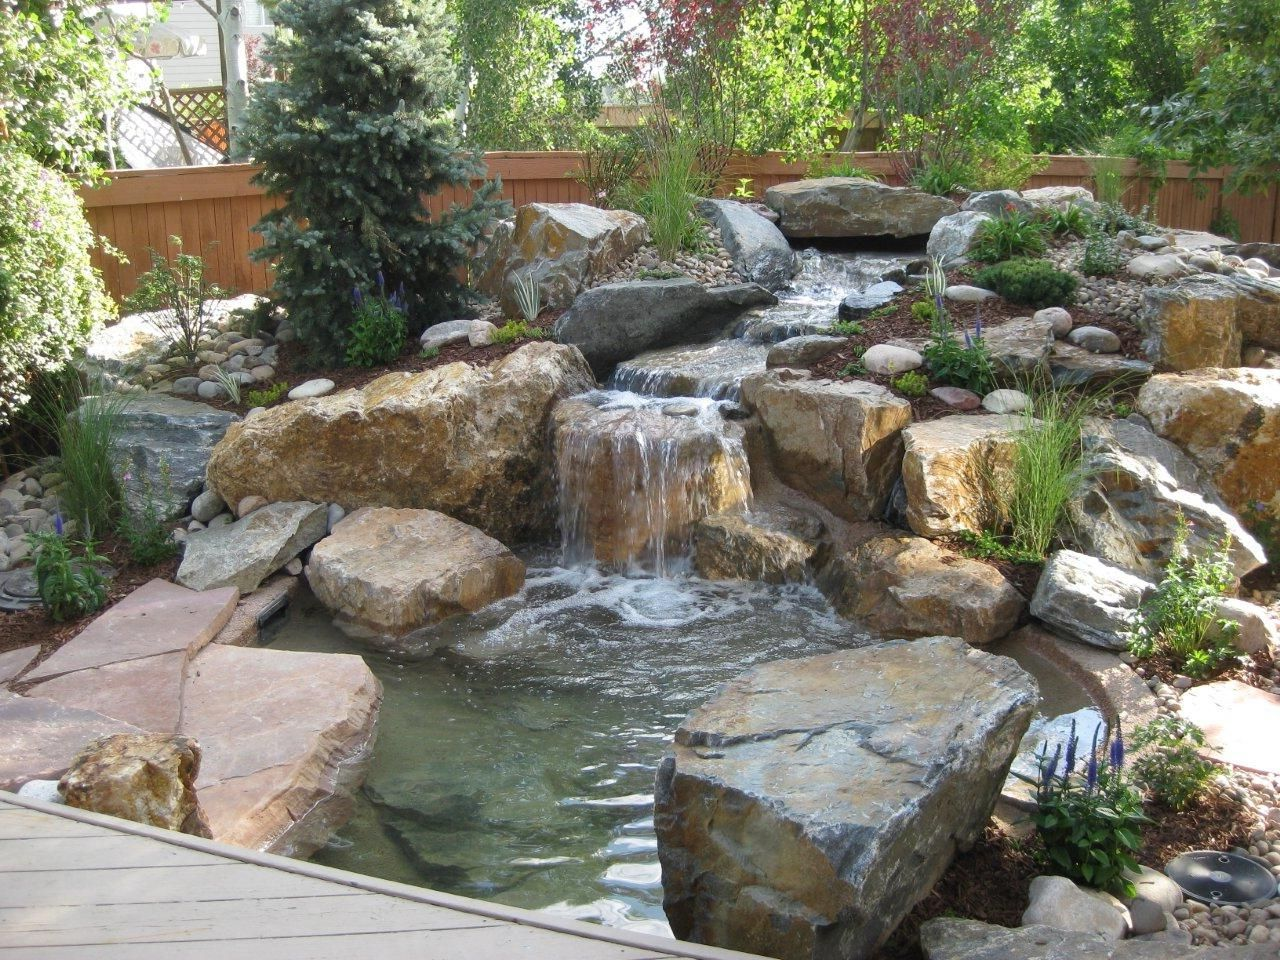 Backyard water features in japanese garden concept for Garden pond water features